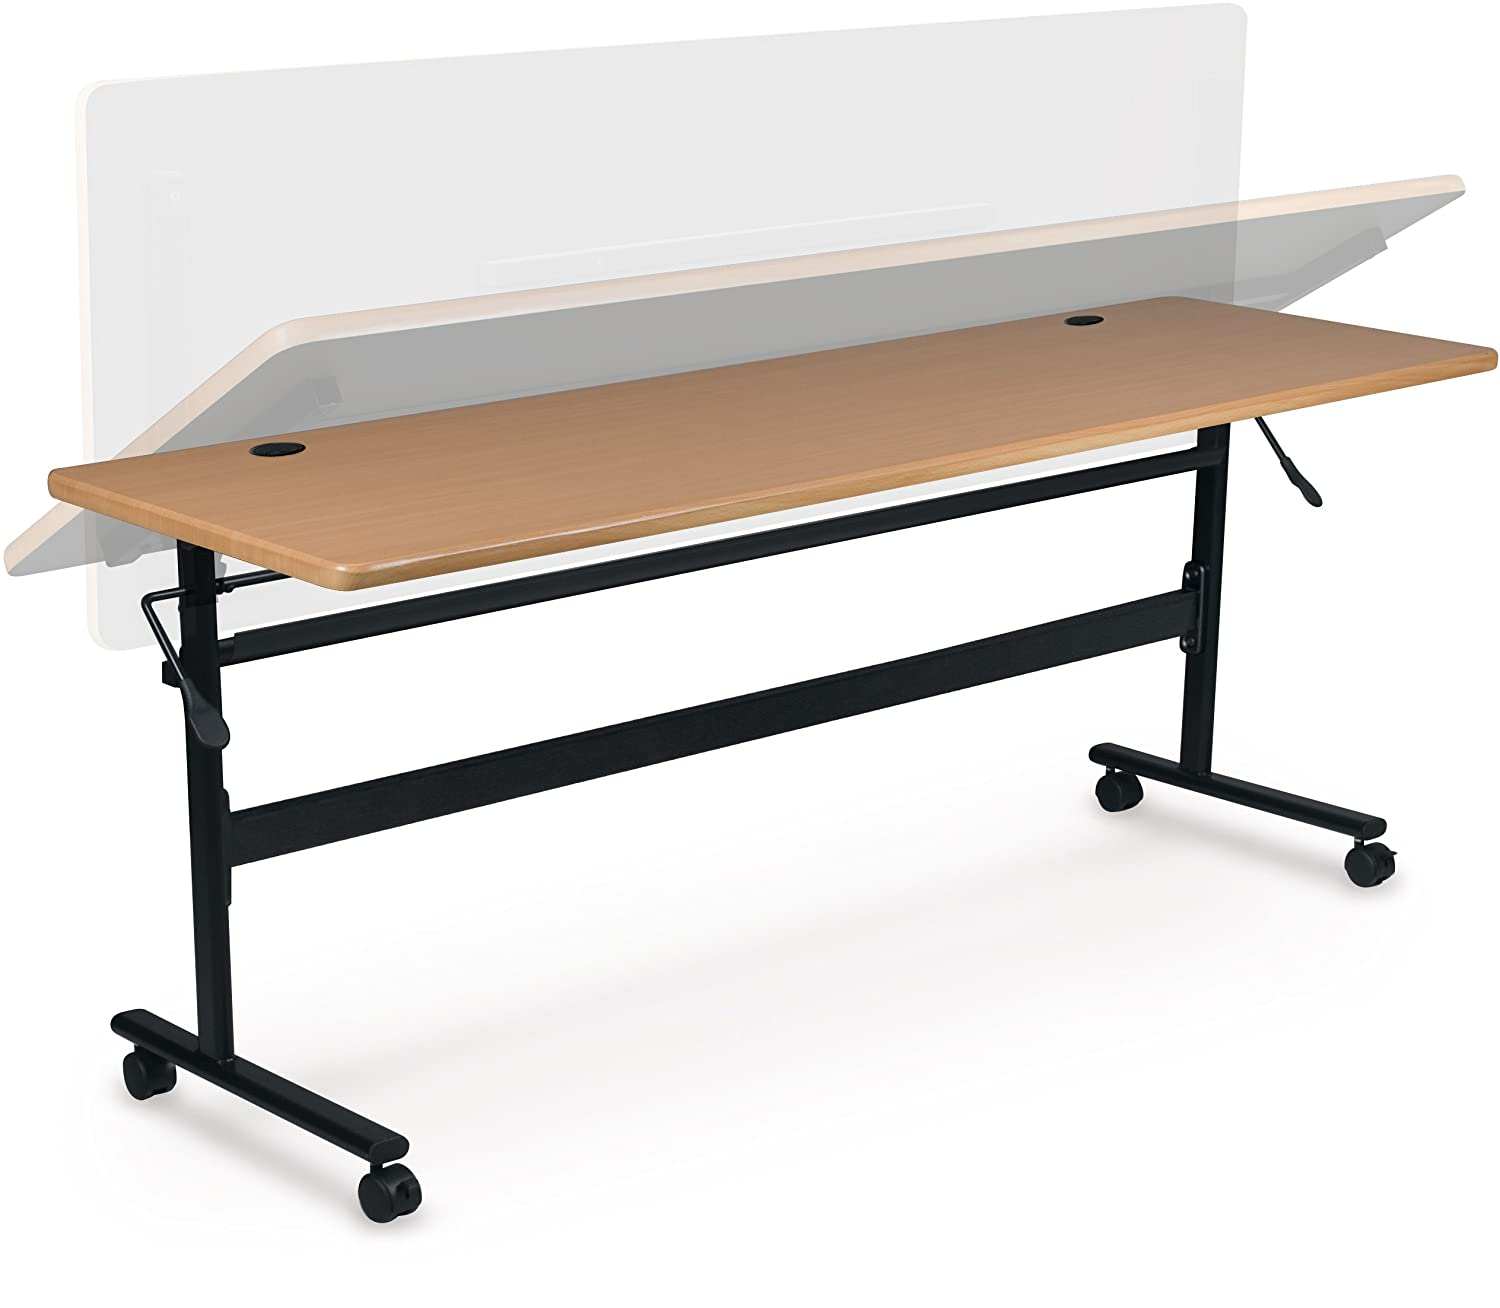 Amazoncom Balt Flipper Training Table H X W X D - Rolling conference table